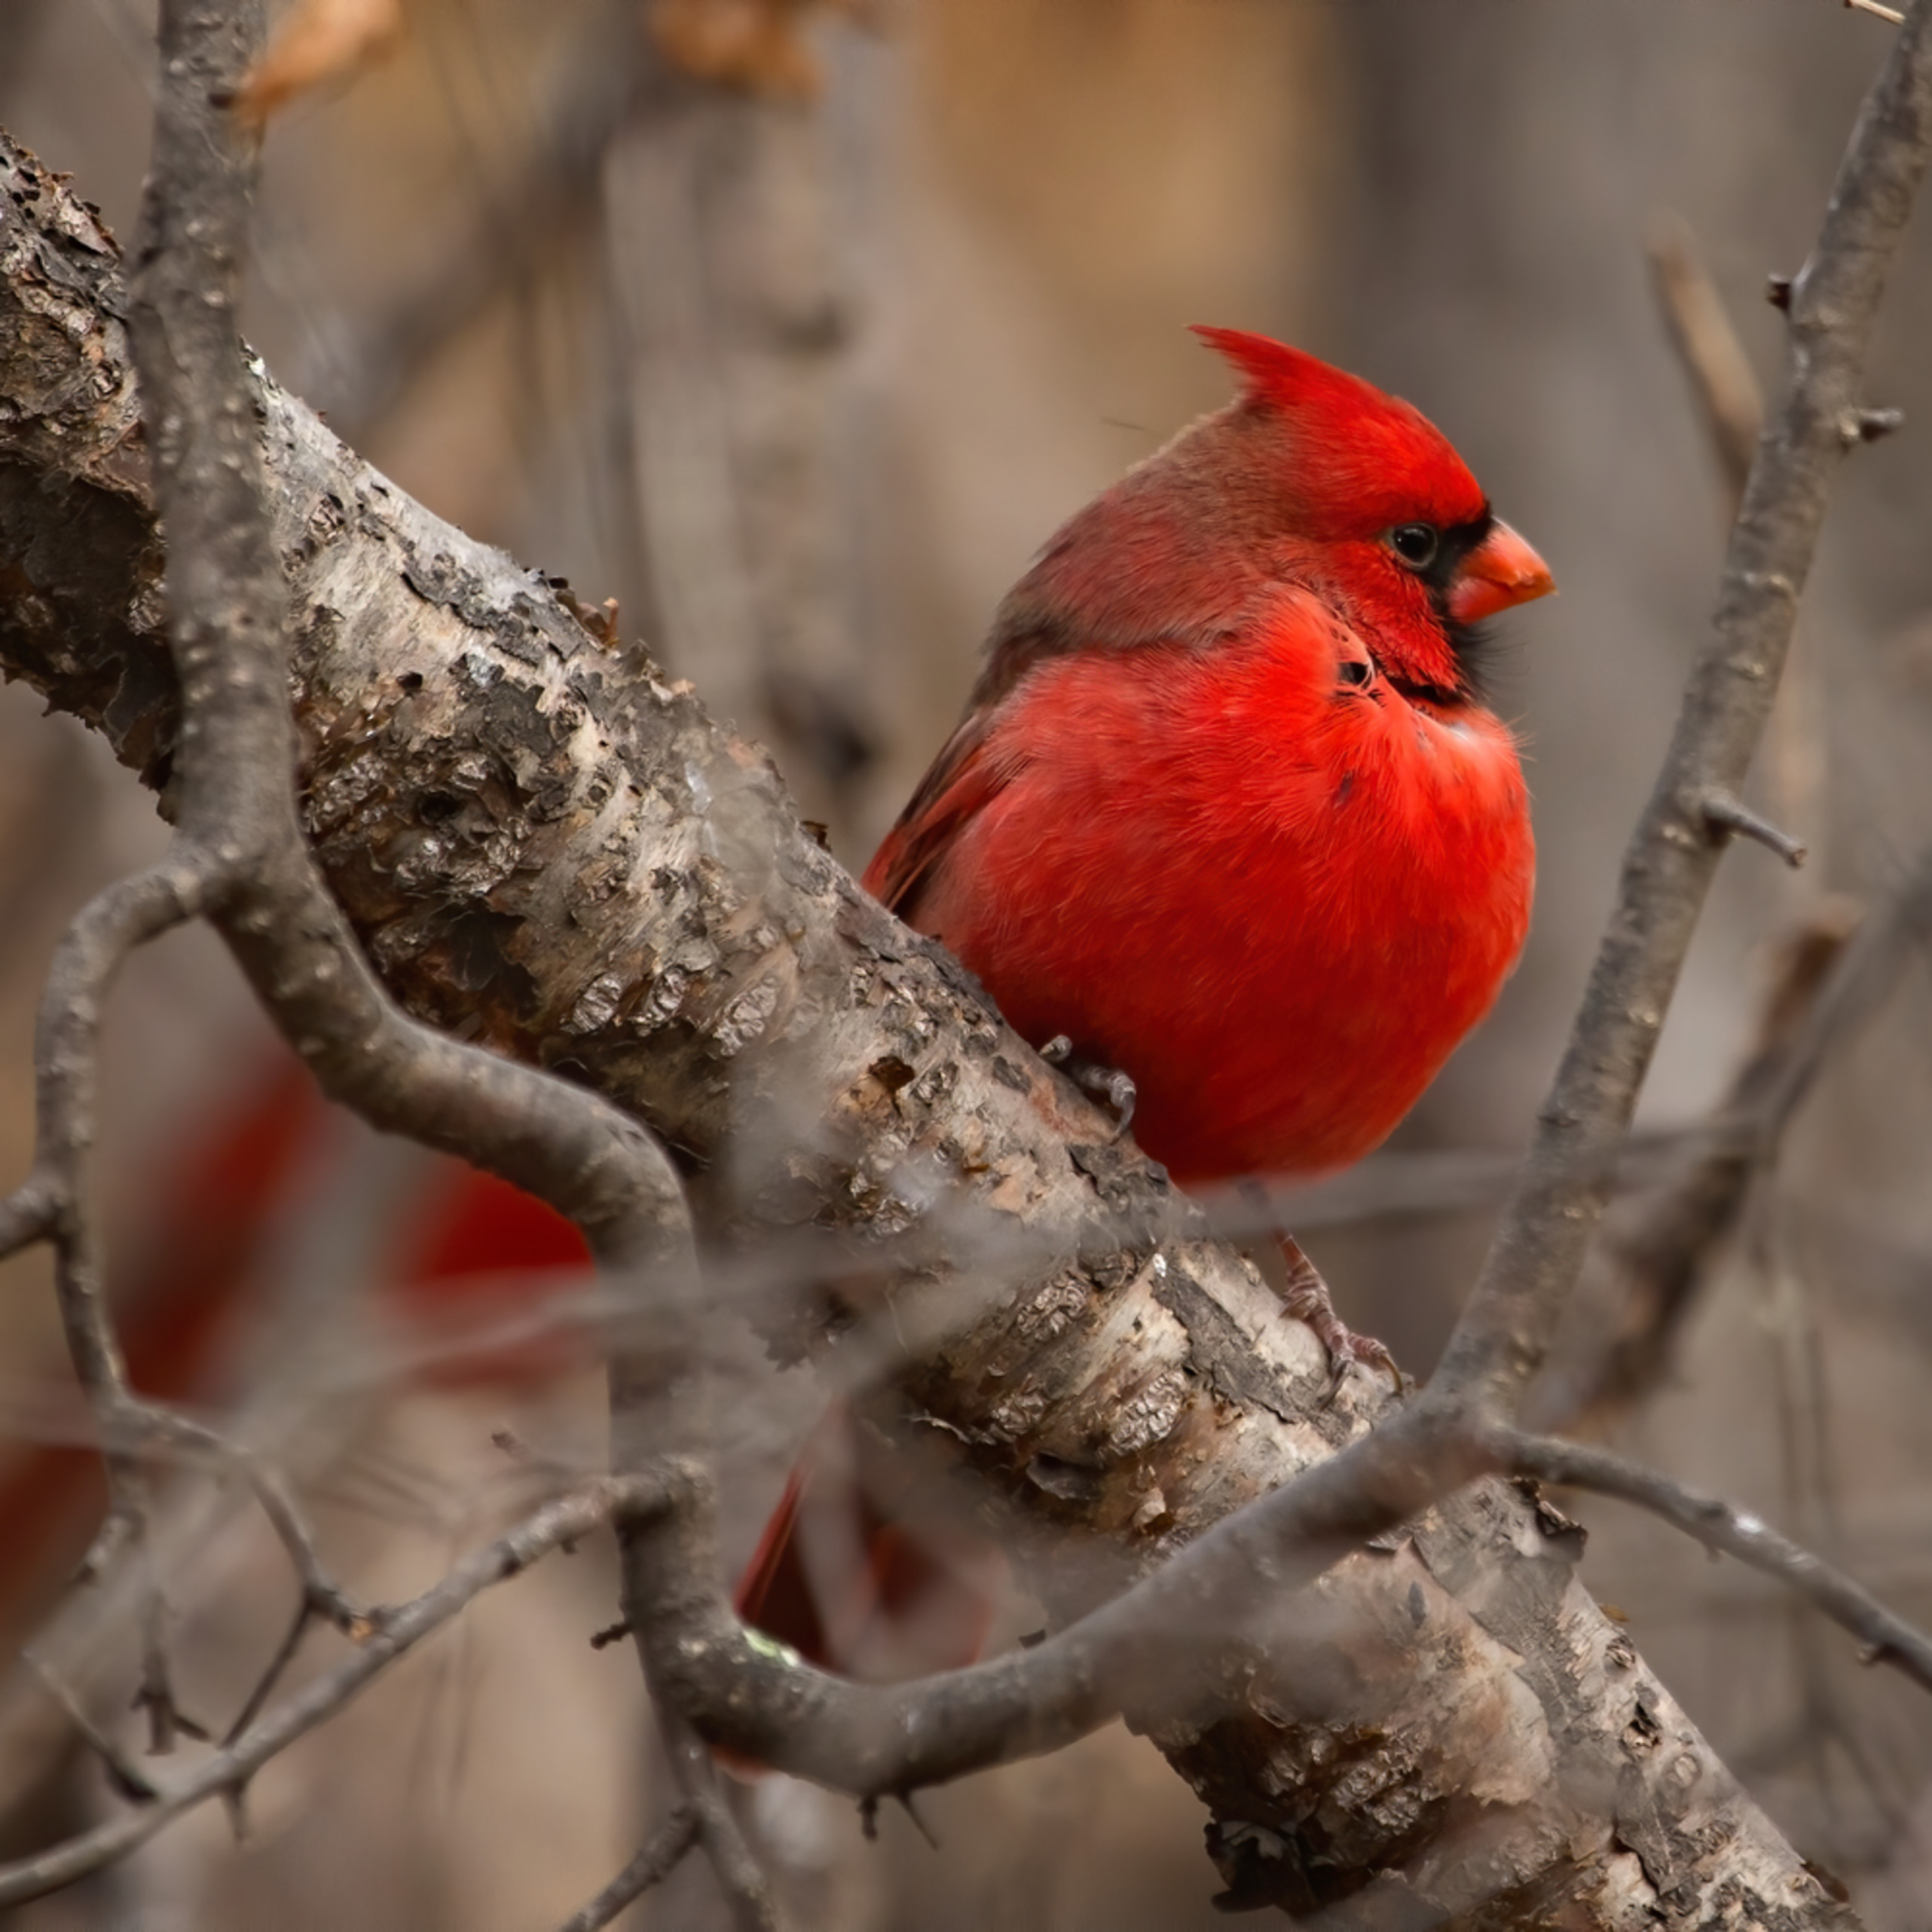 Northern cardinal perched po0k1p